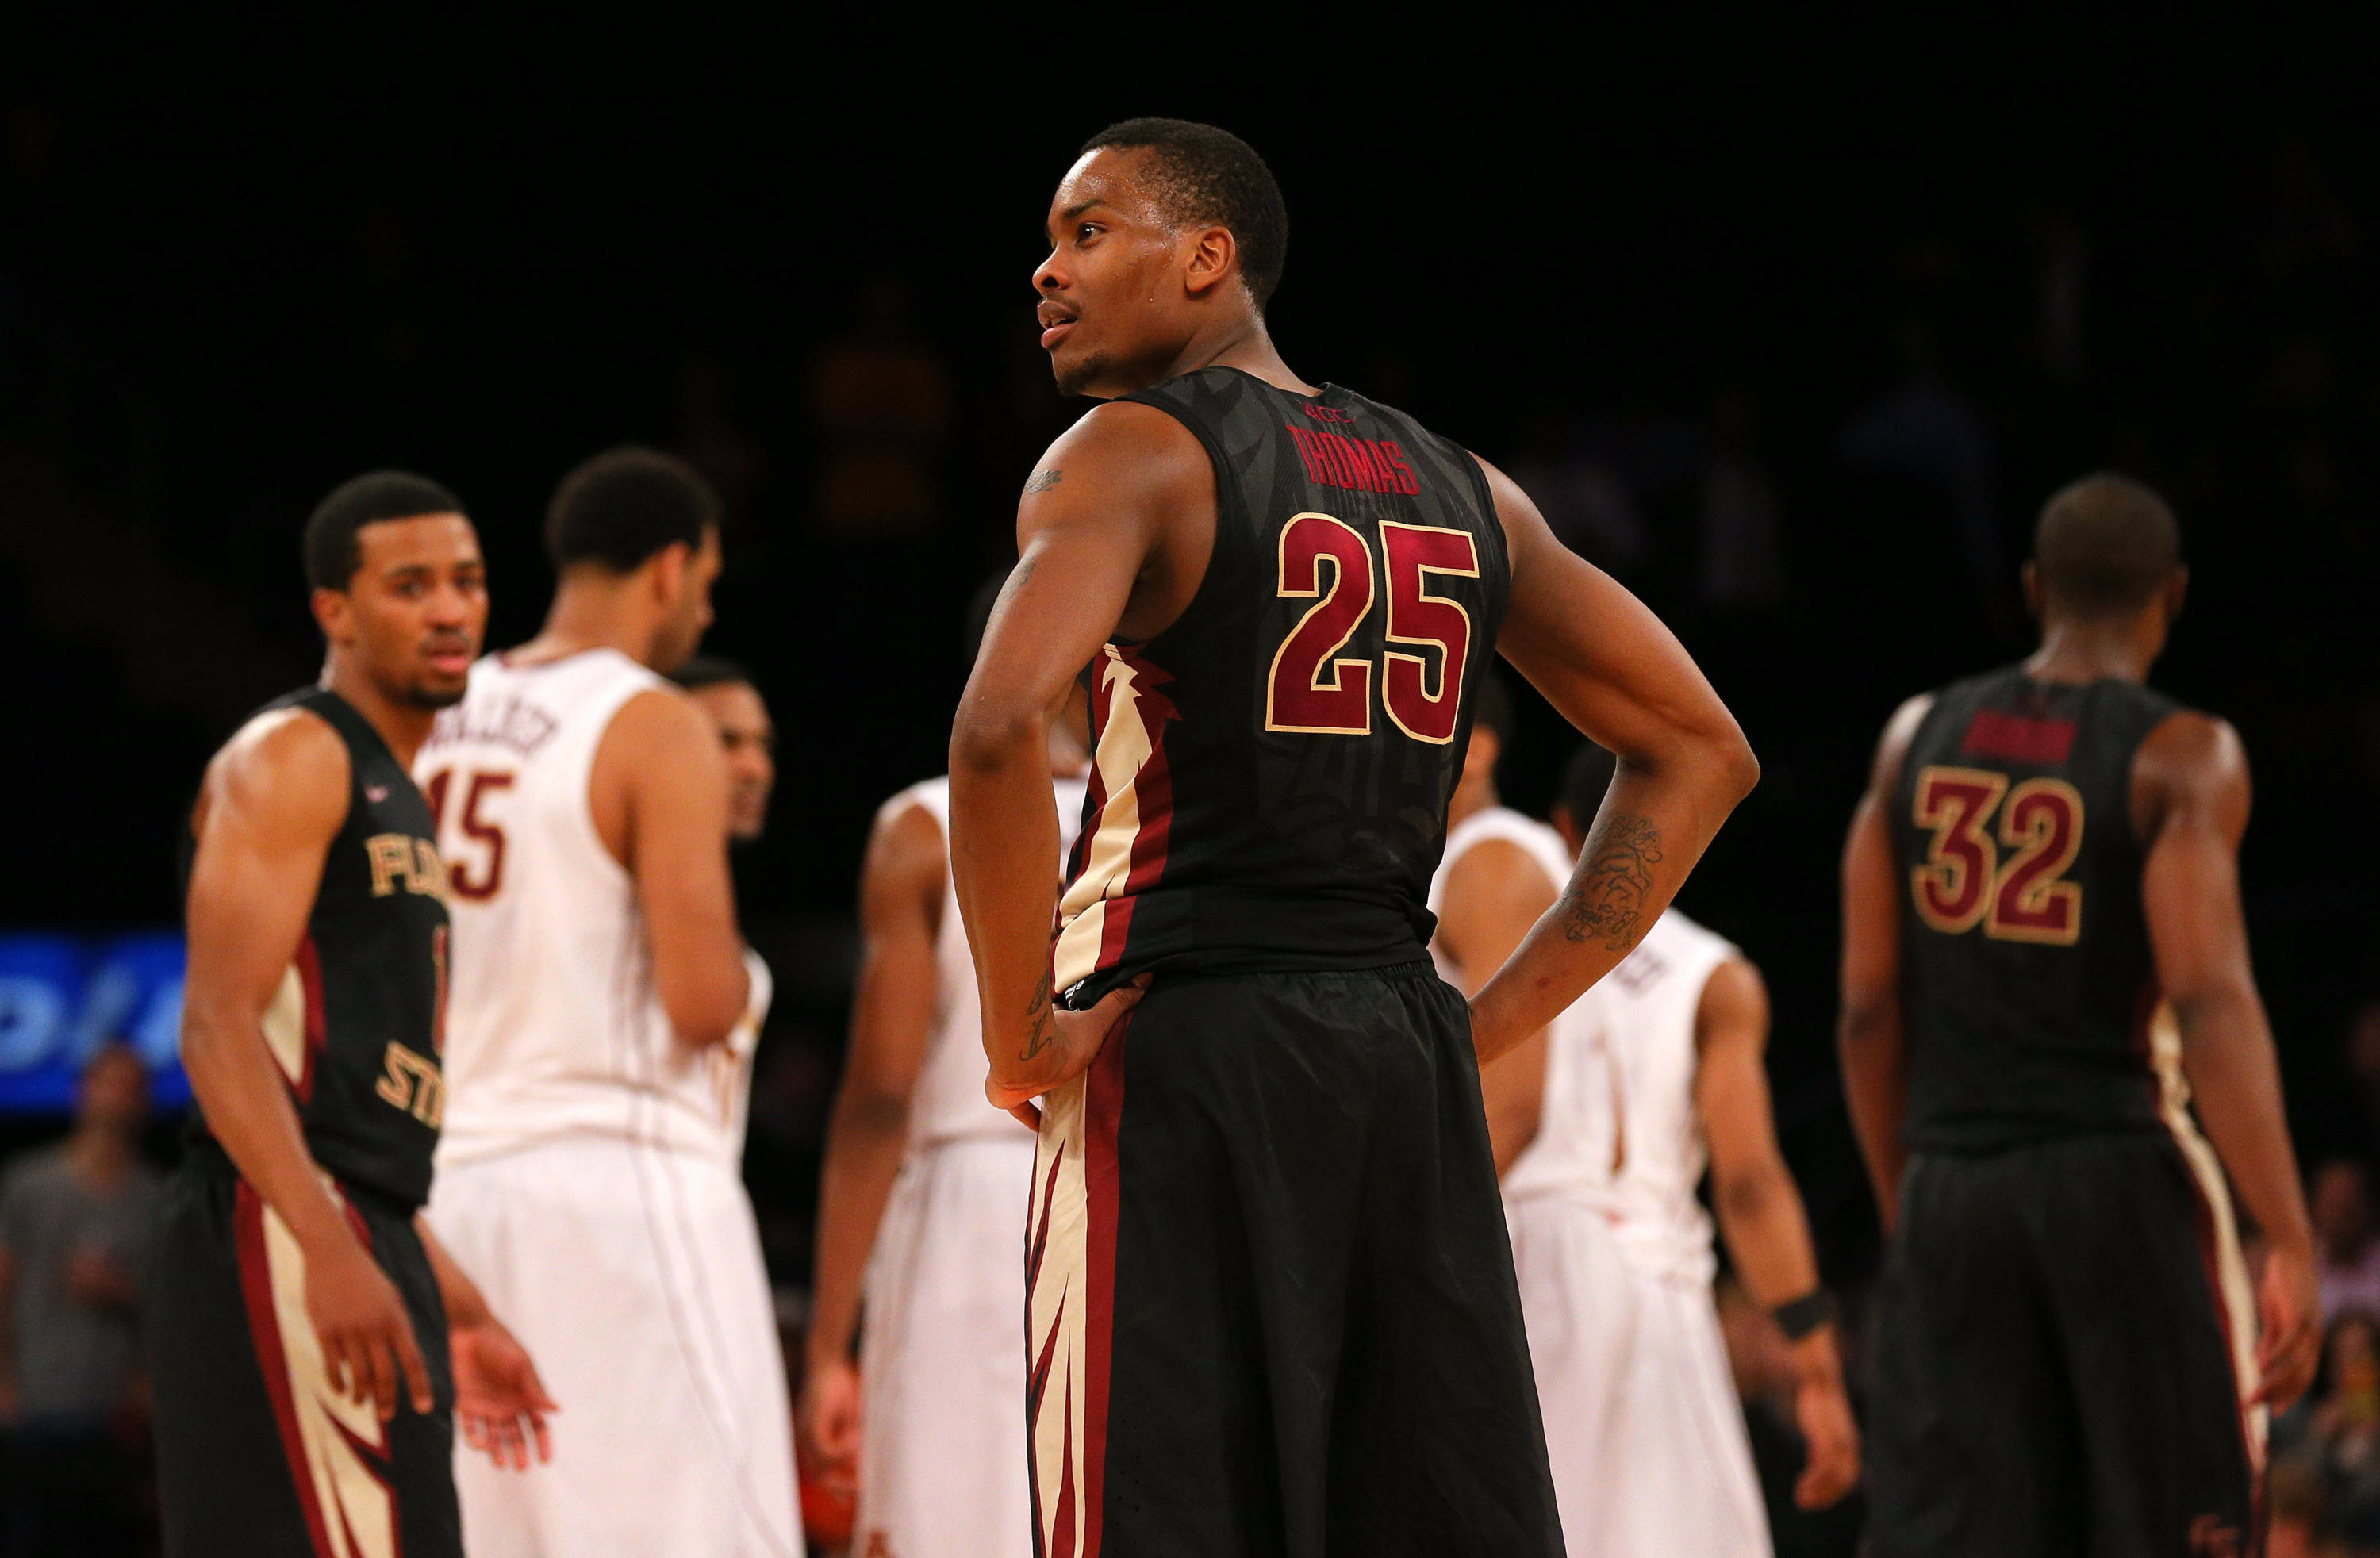 Apr 1, 2014; New York, NY, USA; Florida State Seminoles guard Aaron Thomas (25) reacts to being called for a foul against the Minnesota Golden Gophers during the second half at Madison Square Garden. The Minnesota Golden Gophers defeated the Florida State Seminoles 67-64 in overtime. Mandatory Credit: Adam Hunger-USA TODAY Sports